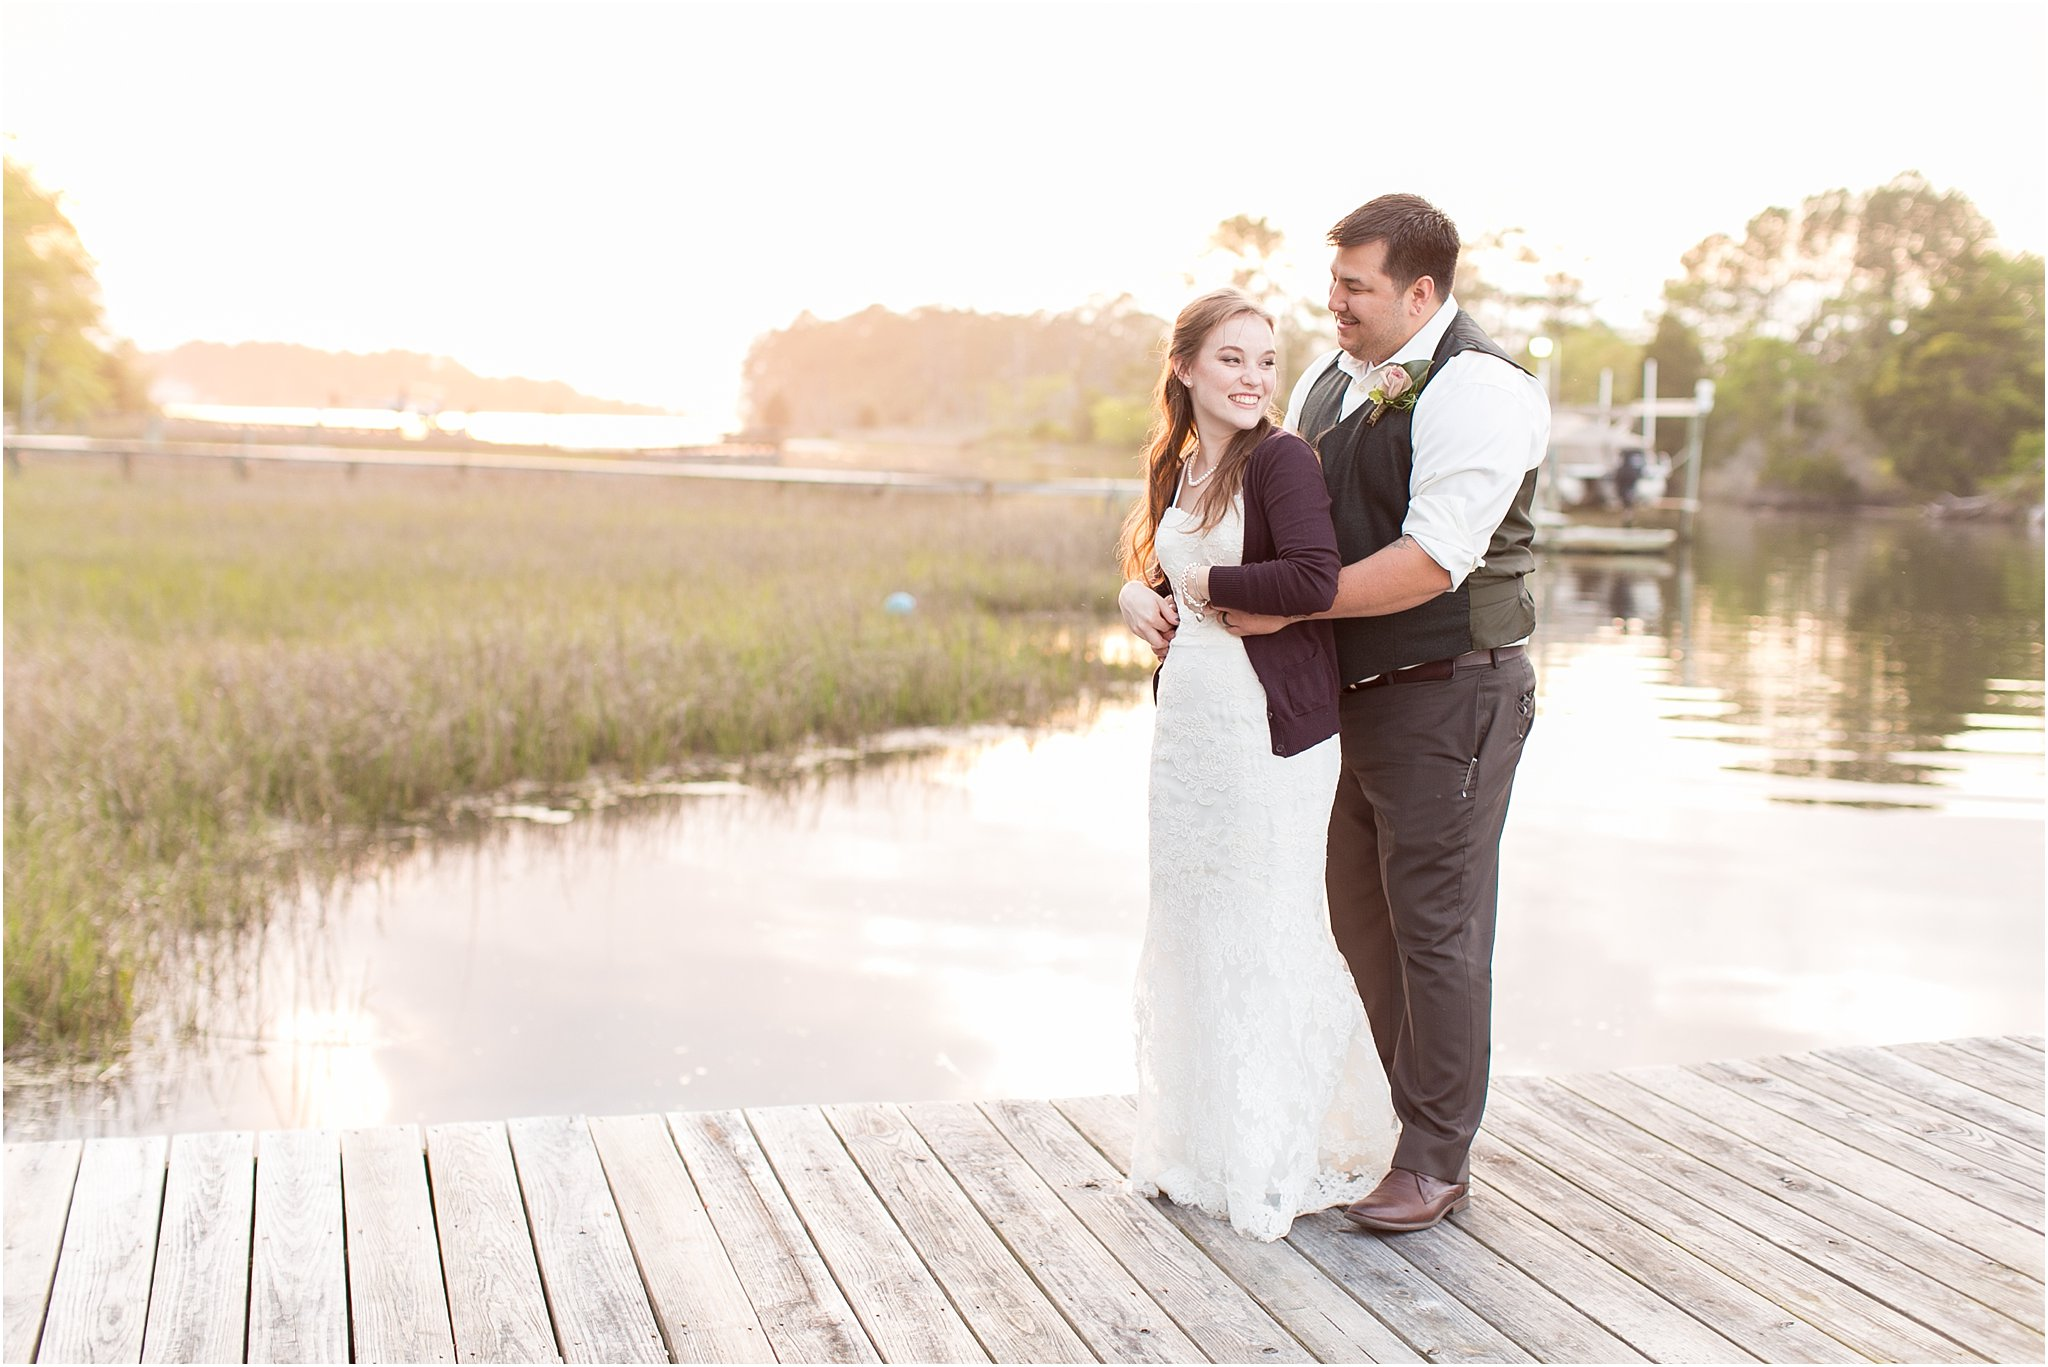 jessica_ryan_photography_virginia_virginiabeachwedding_bayislandvirginiabeach_backyardwedding_waterfrontwedding_intimatewedding_vintagewedding_1609